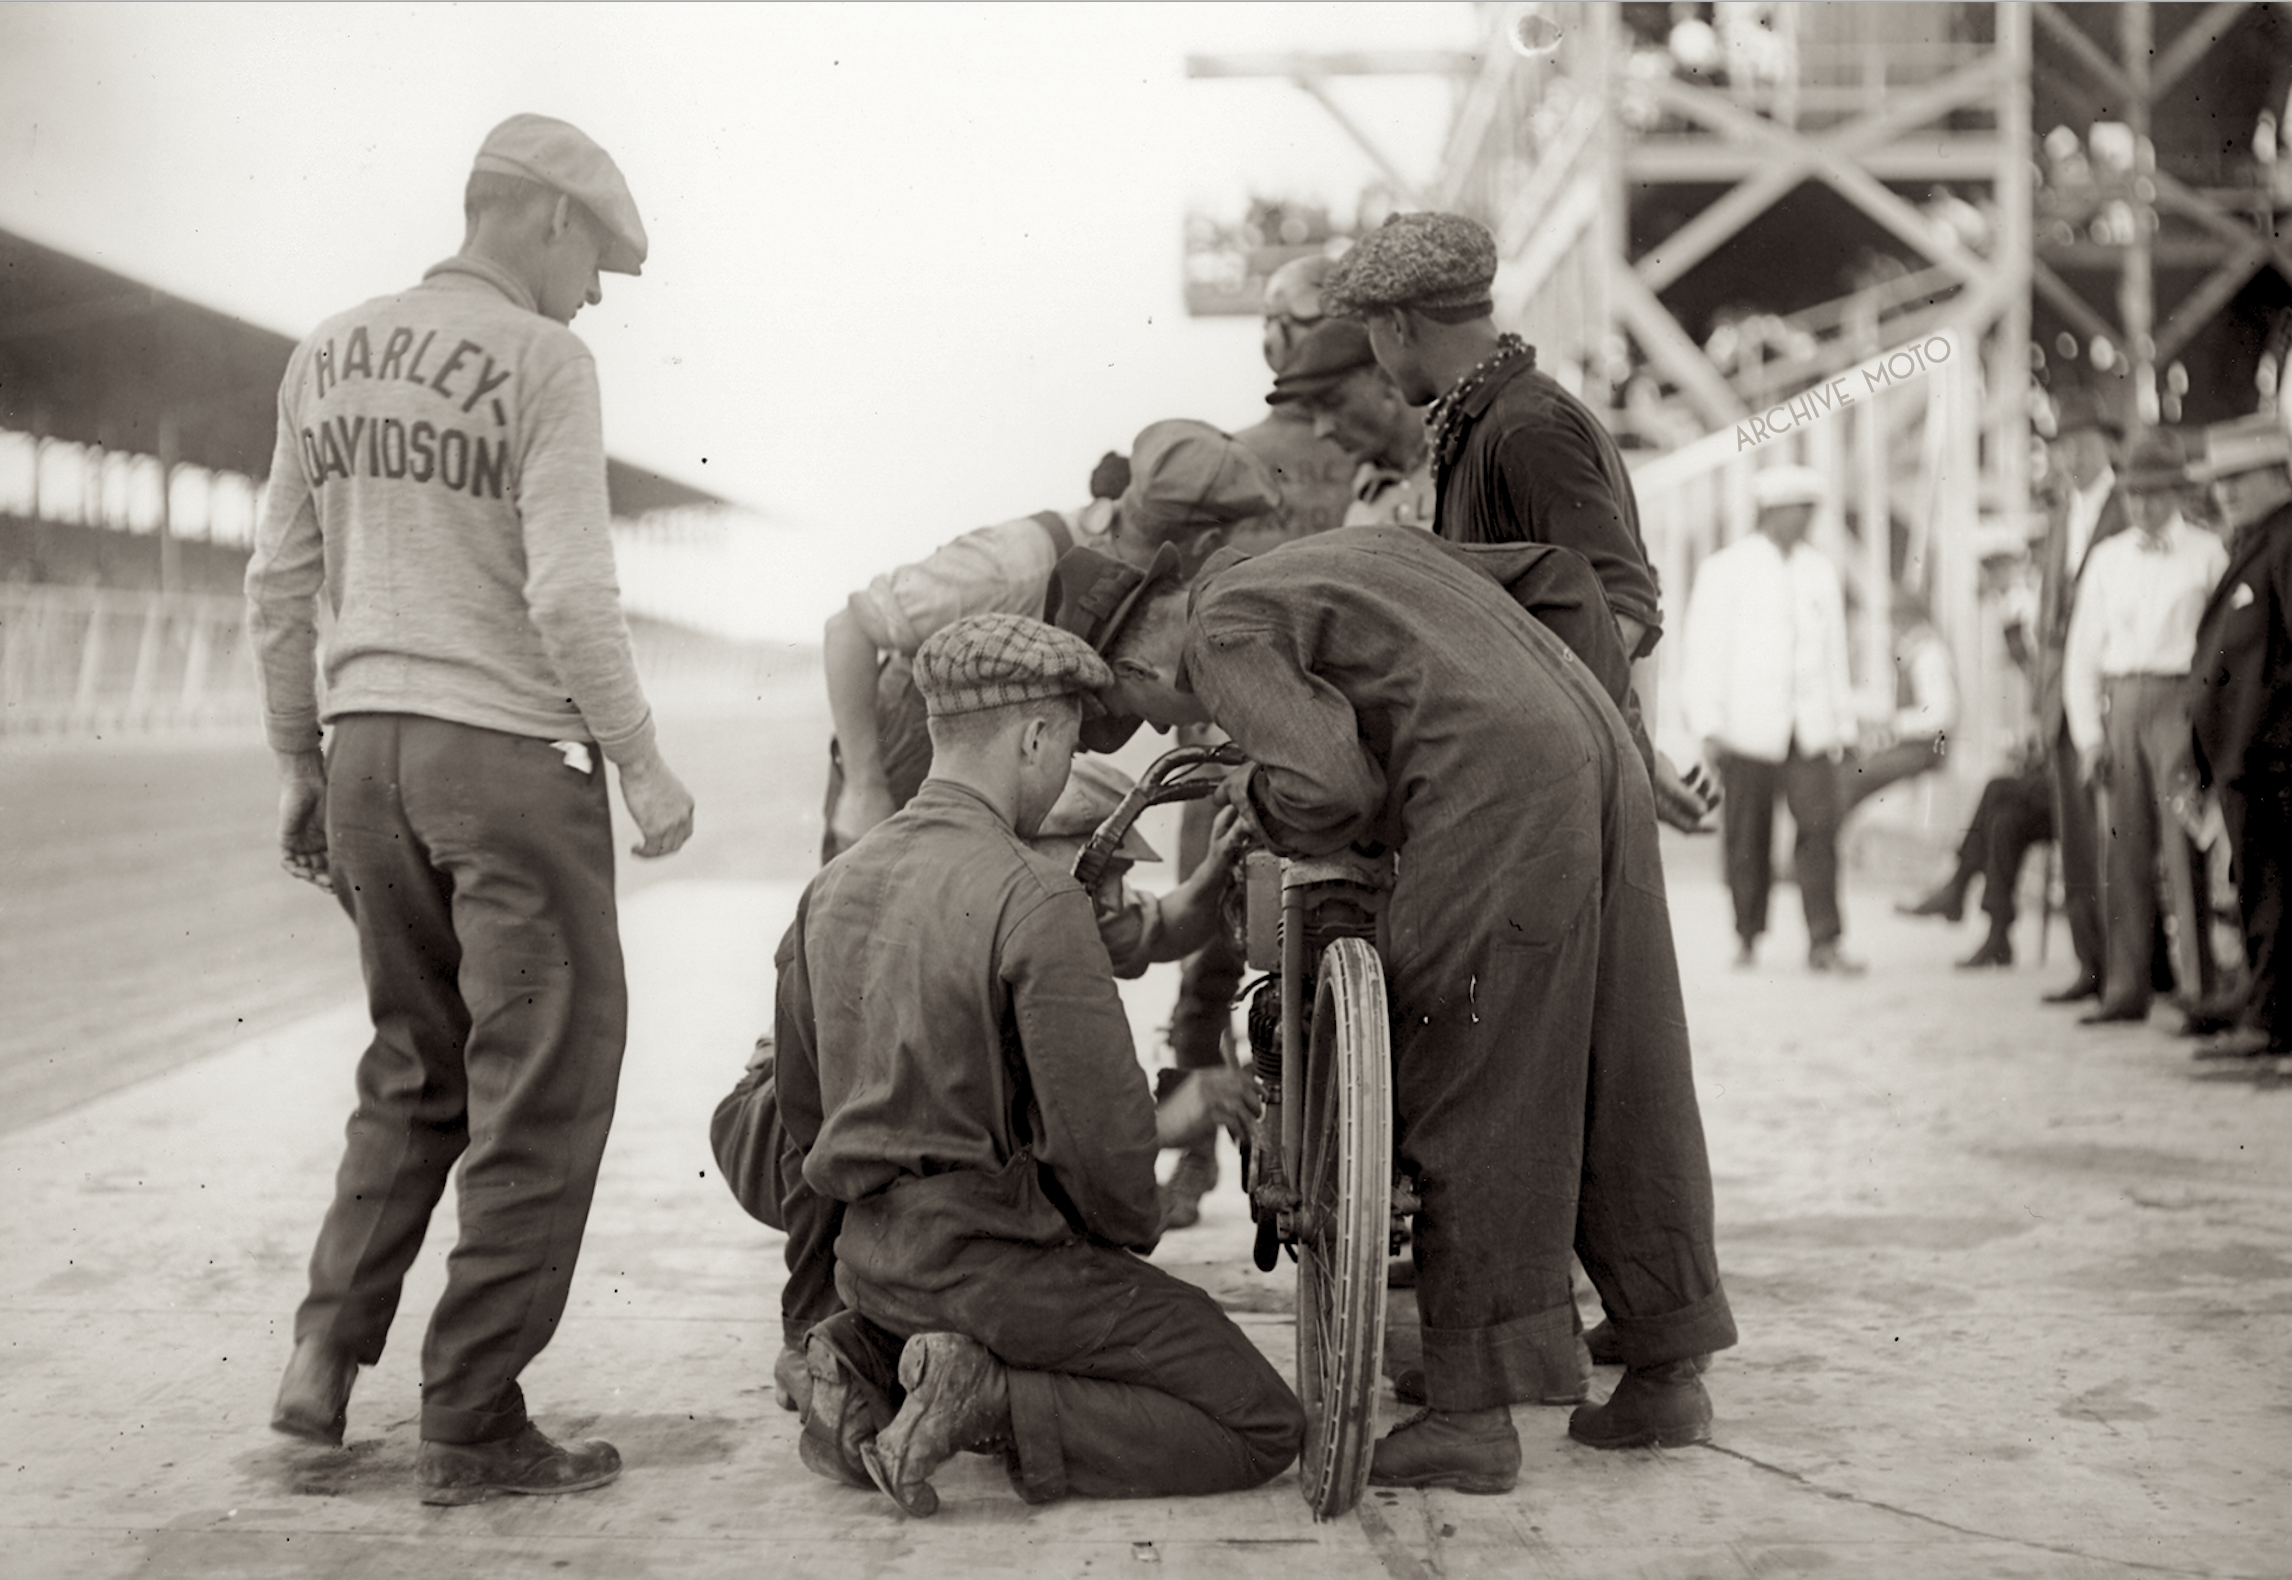 Ottaway's crew outfitted in coveralls provided to all crew members by Firestone for the event working on swapping plugs on Otto Walker's machine  during the 300-Mile race at Chicago's Speedway Park in the fall of 1915.